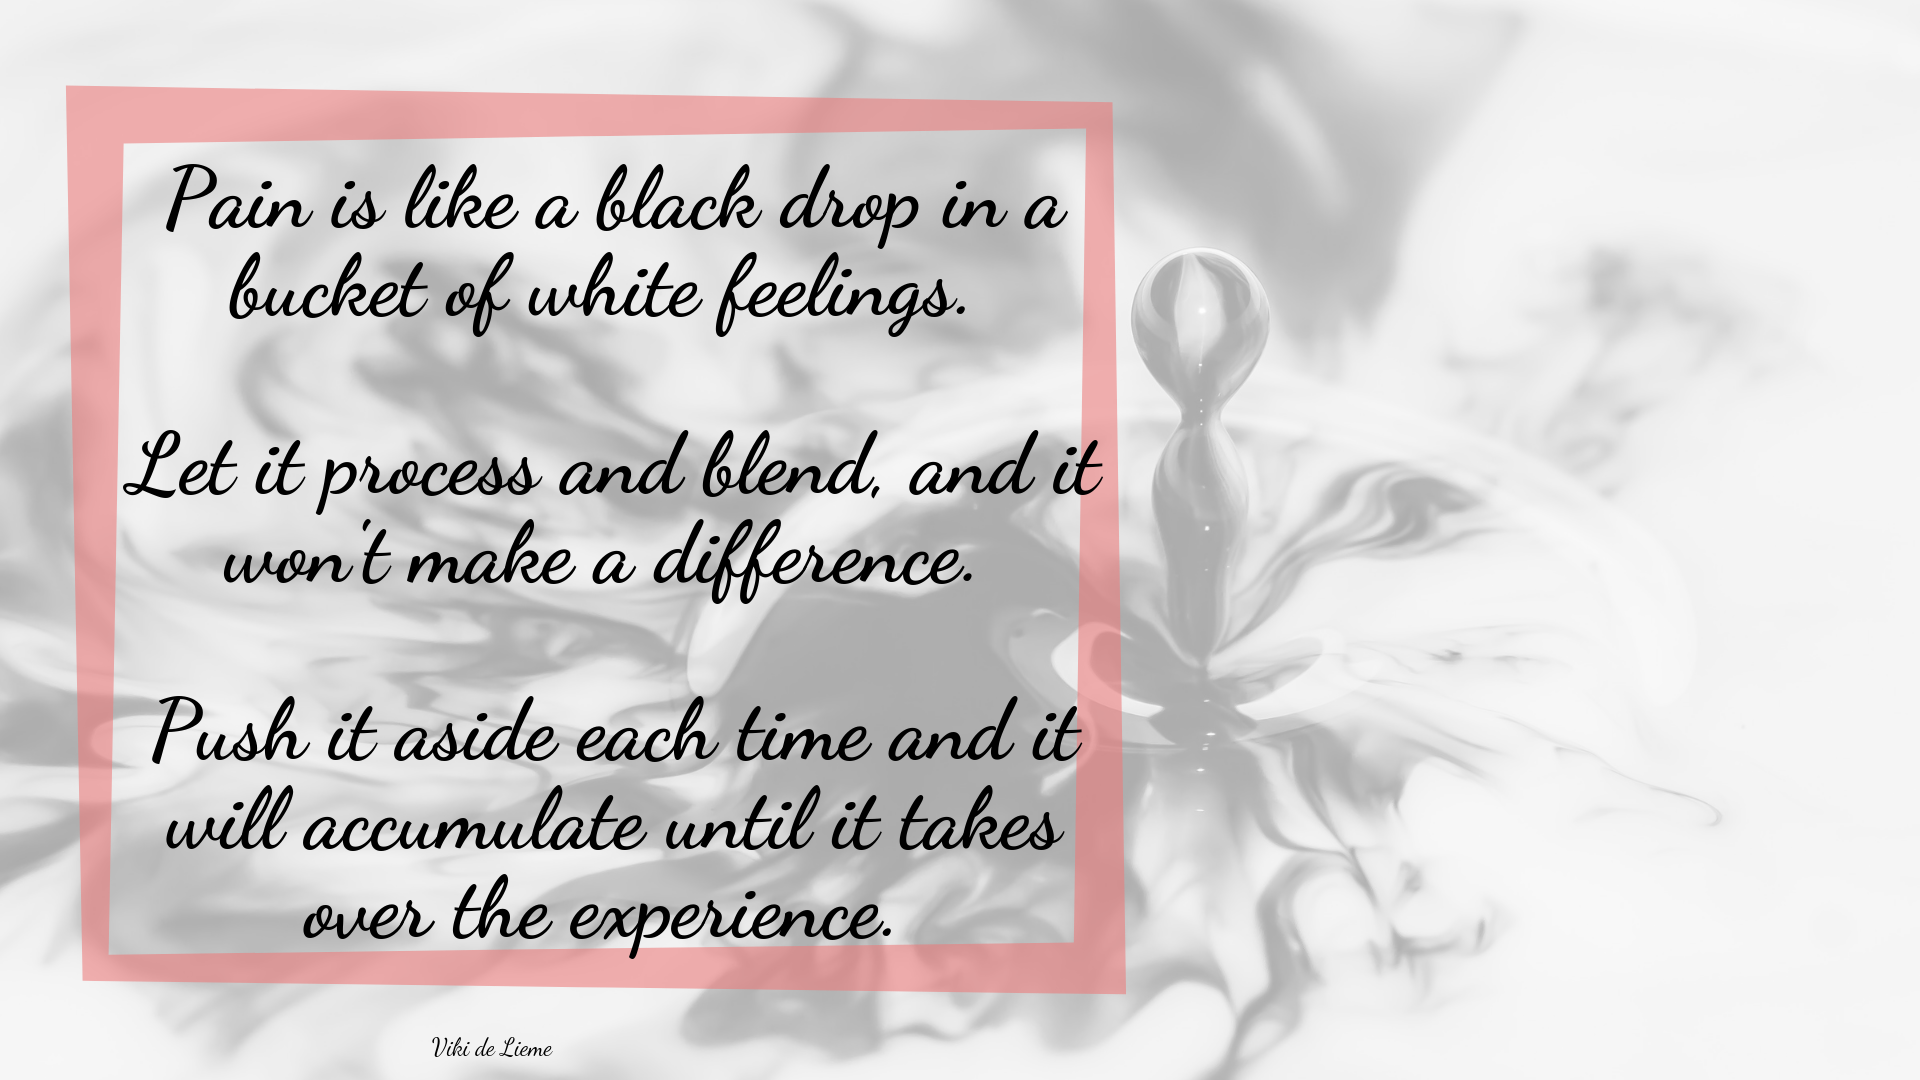 Pain is like a black drop in a bucket of white feelings. Let it process and blend, and it won't make a difference. Push it aside each time and it will accumulate until it takes over the experience.